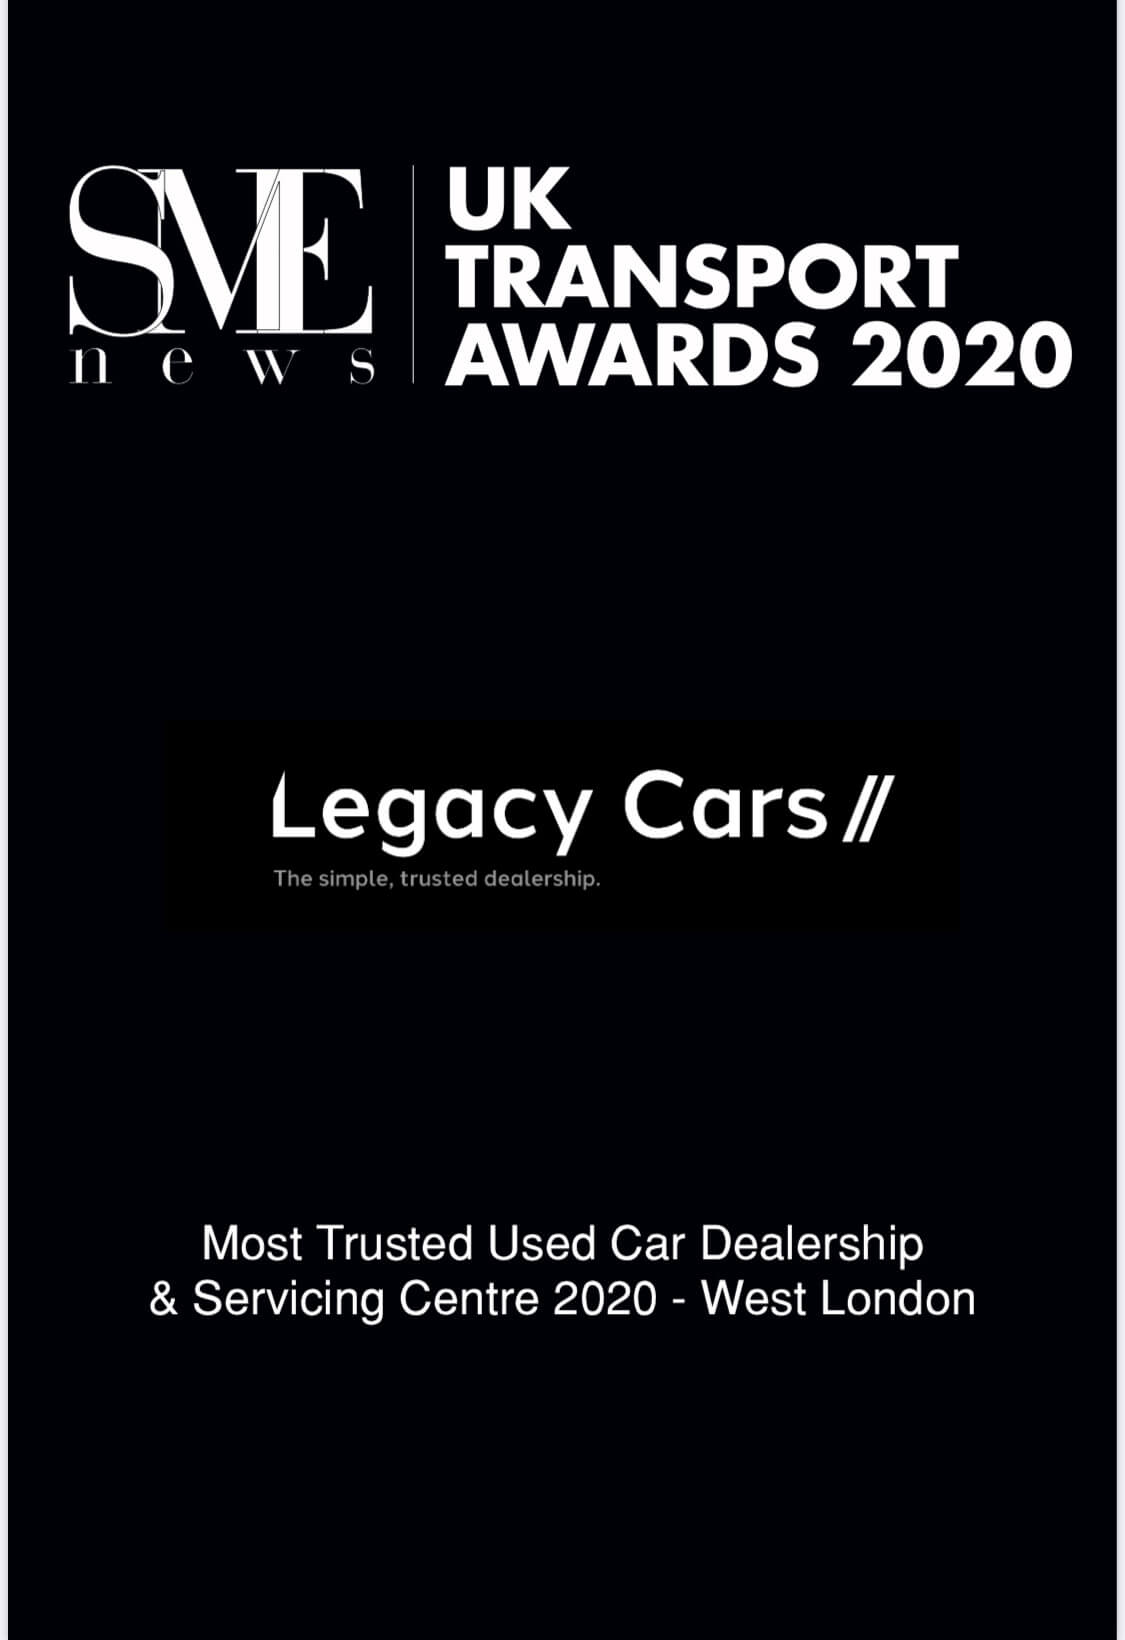 SME News UK Transport Awards 2020 Winner – Most Trusted Used Car Dealership & Servicing Centre 2020 - West London